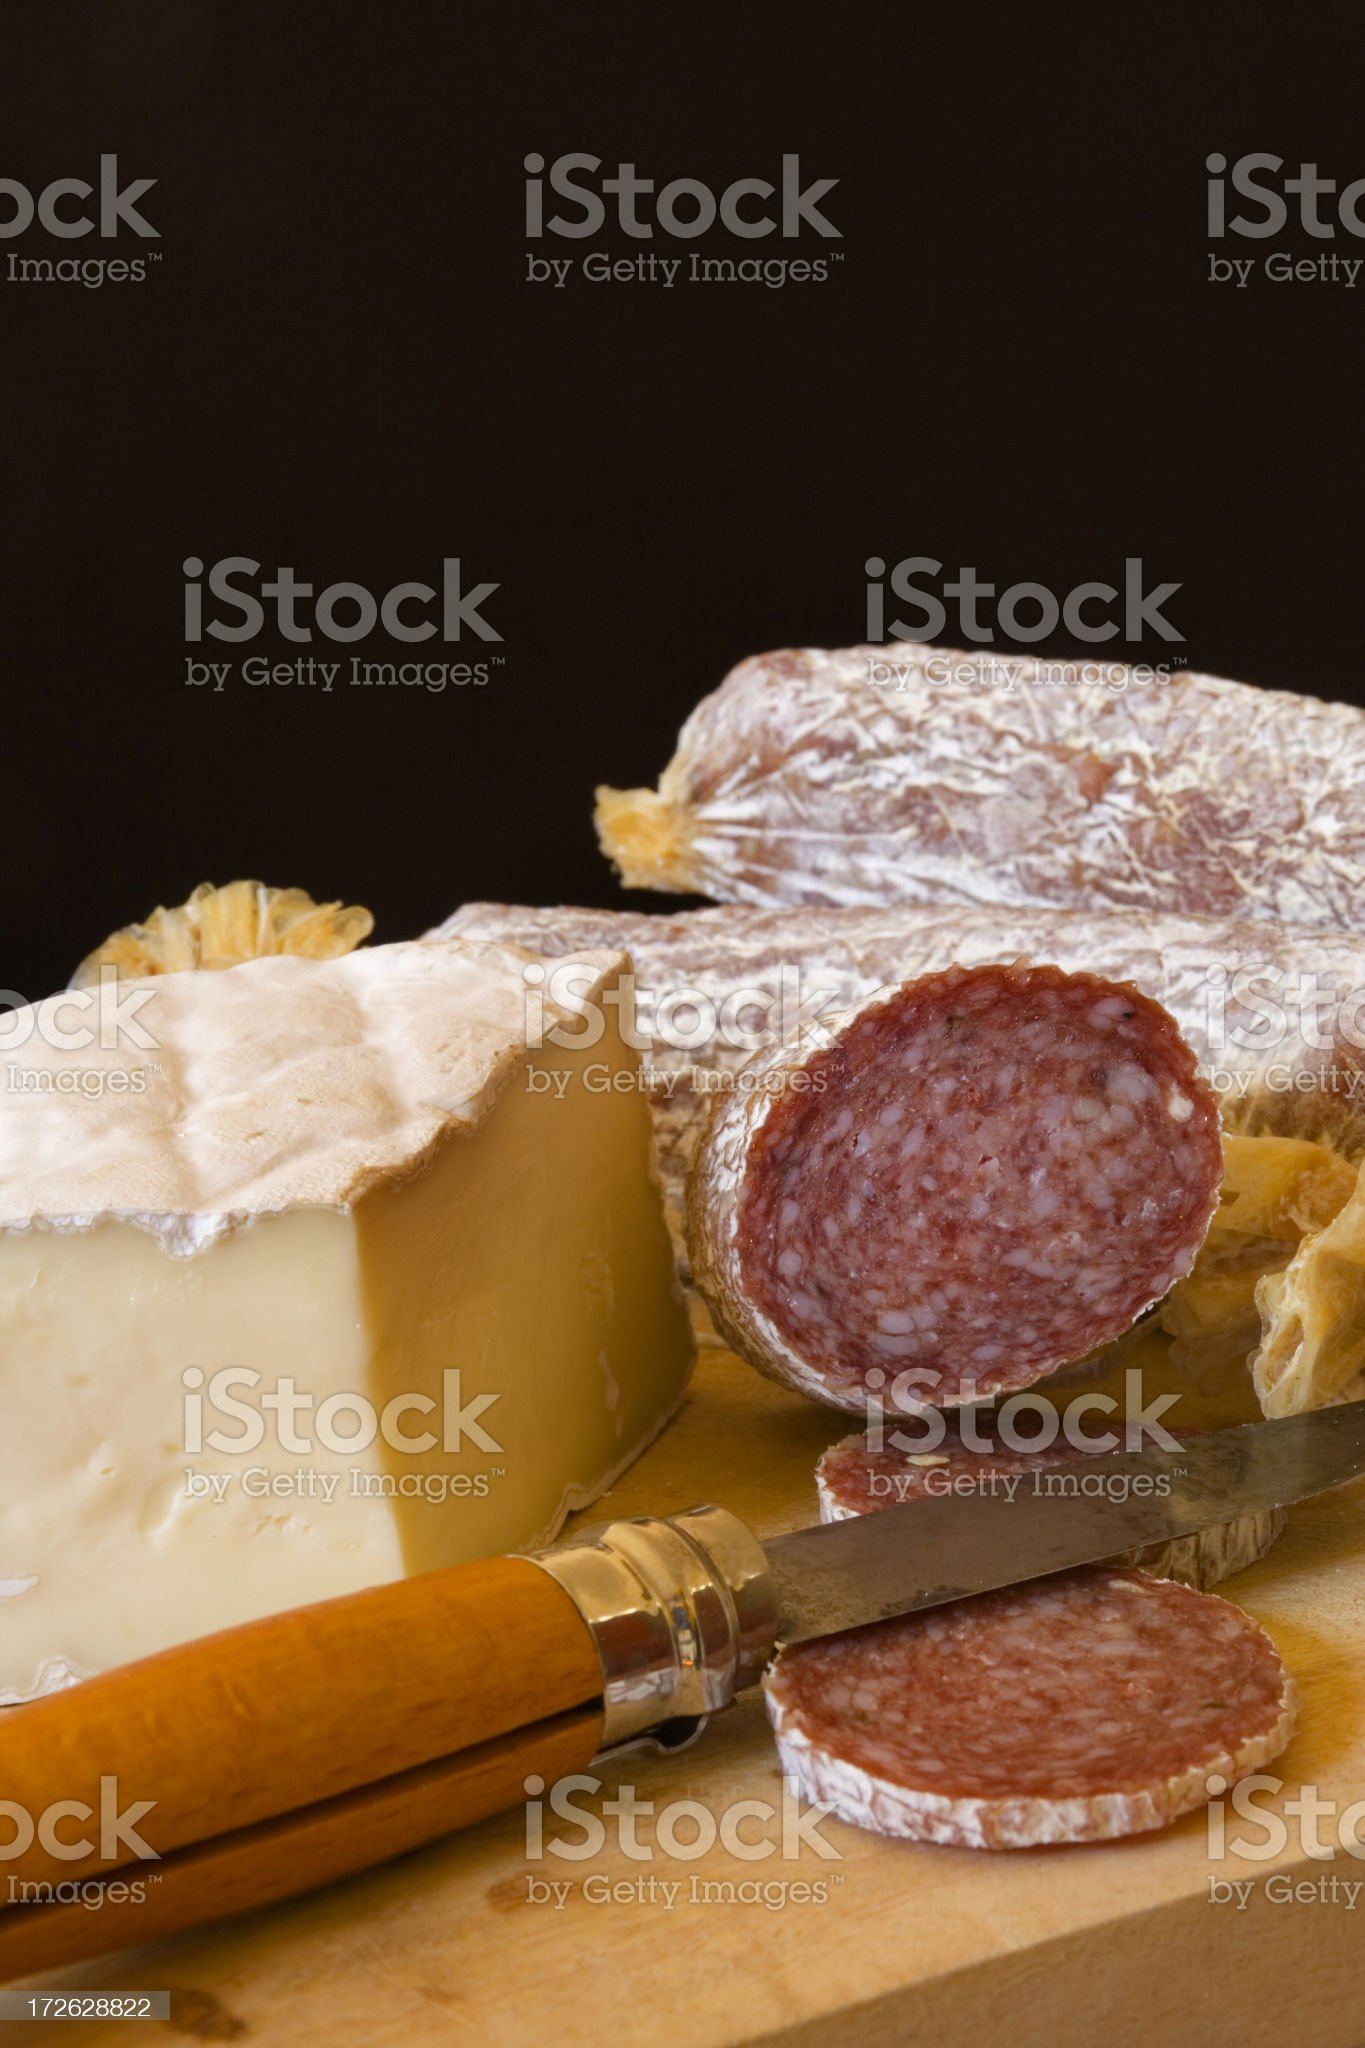 Brie & Sausages on Board Vt royalty-free stock photo